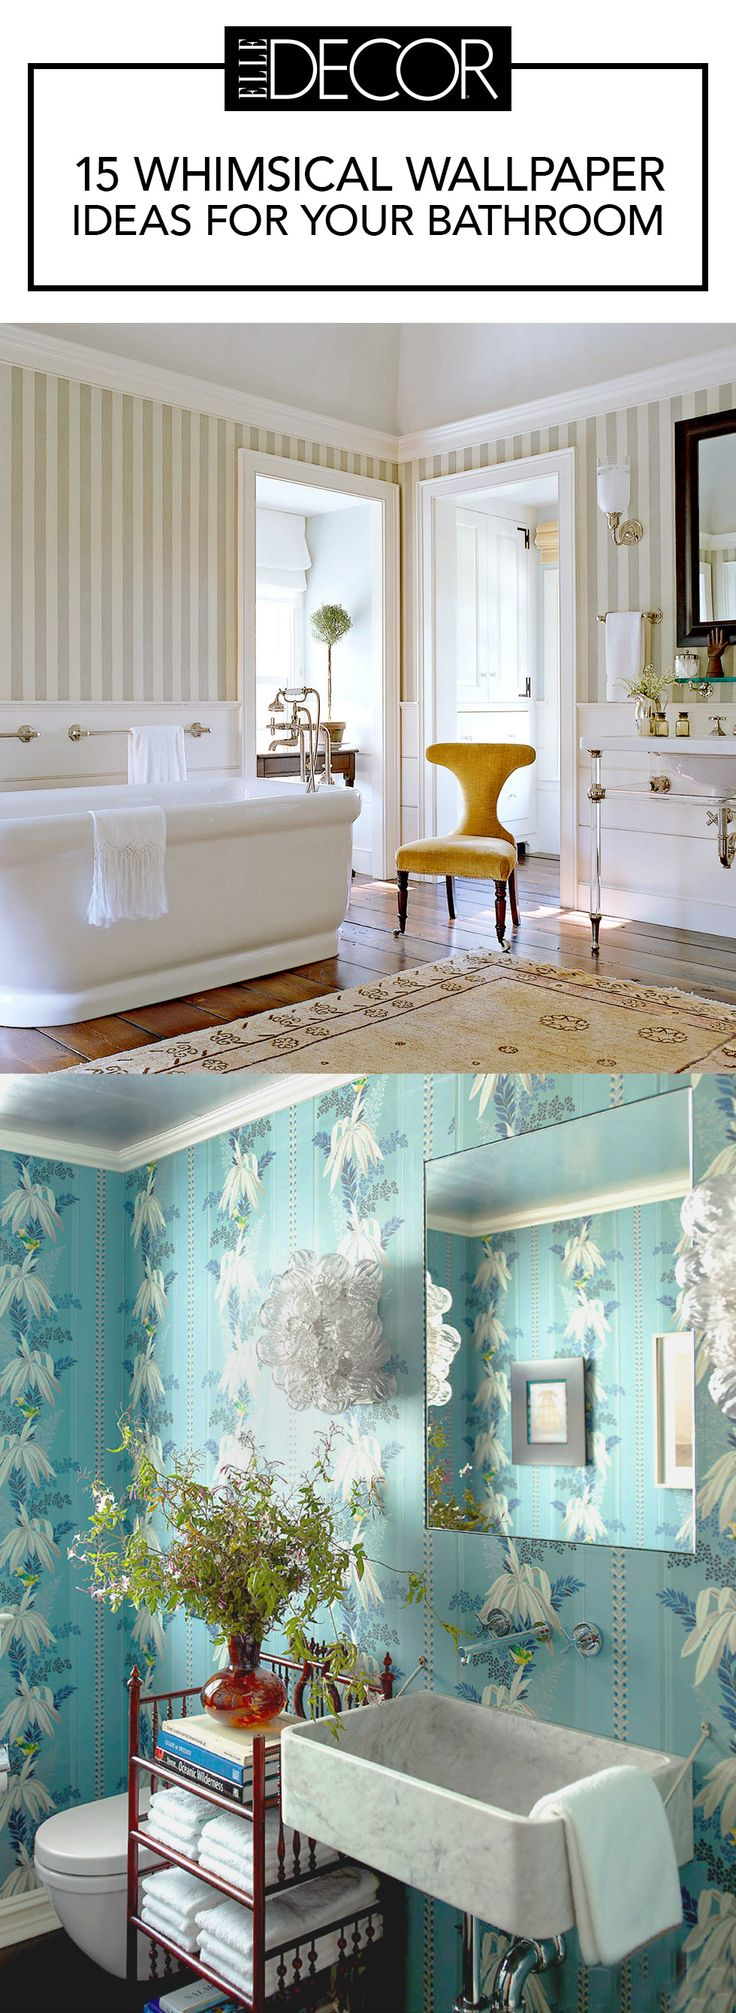 15 Whimsical Wallpaper Ideas For Your Bathroom See more